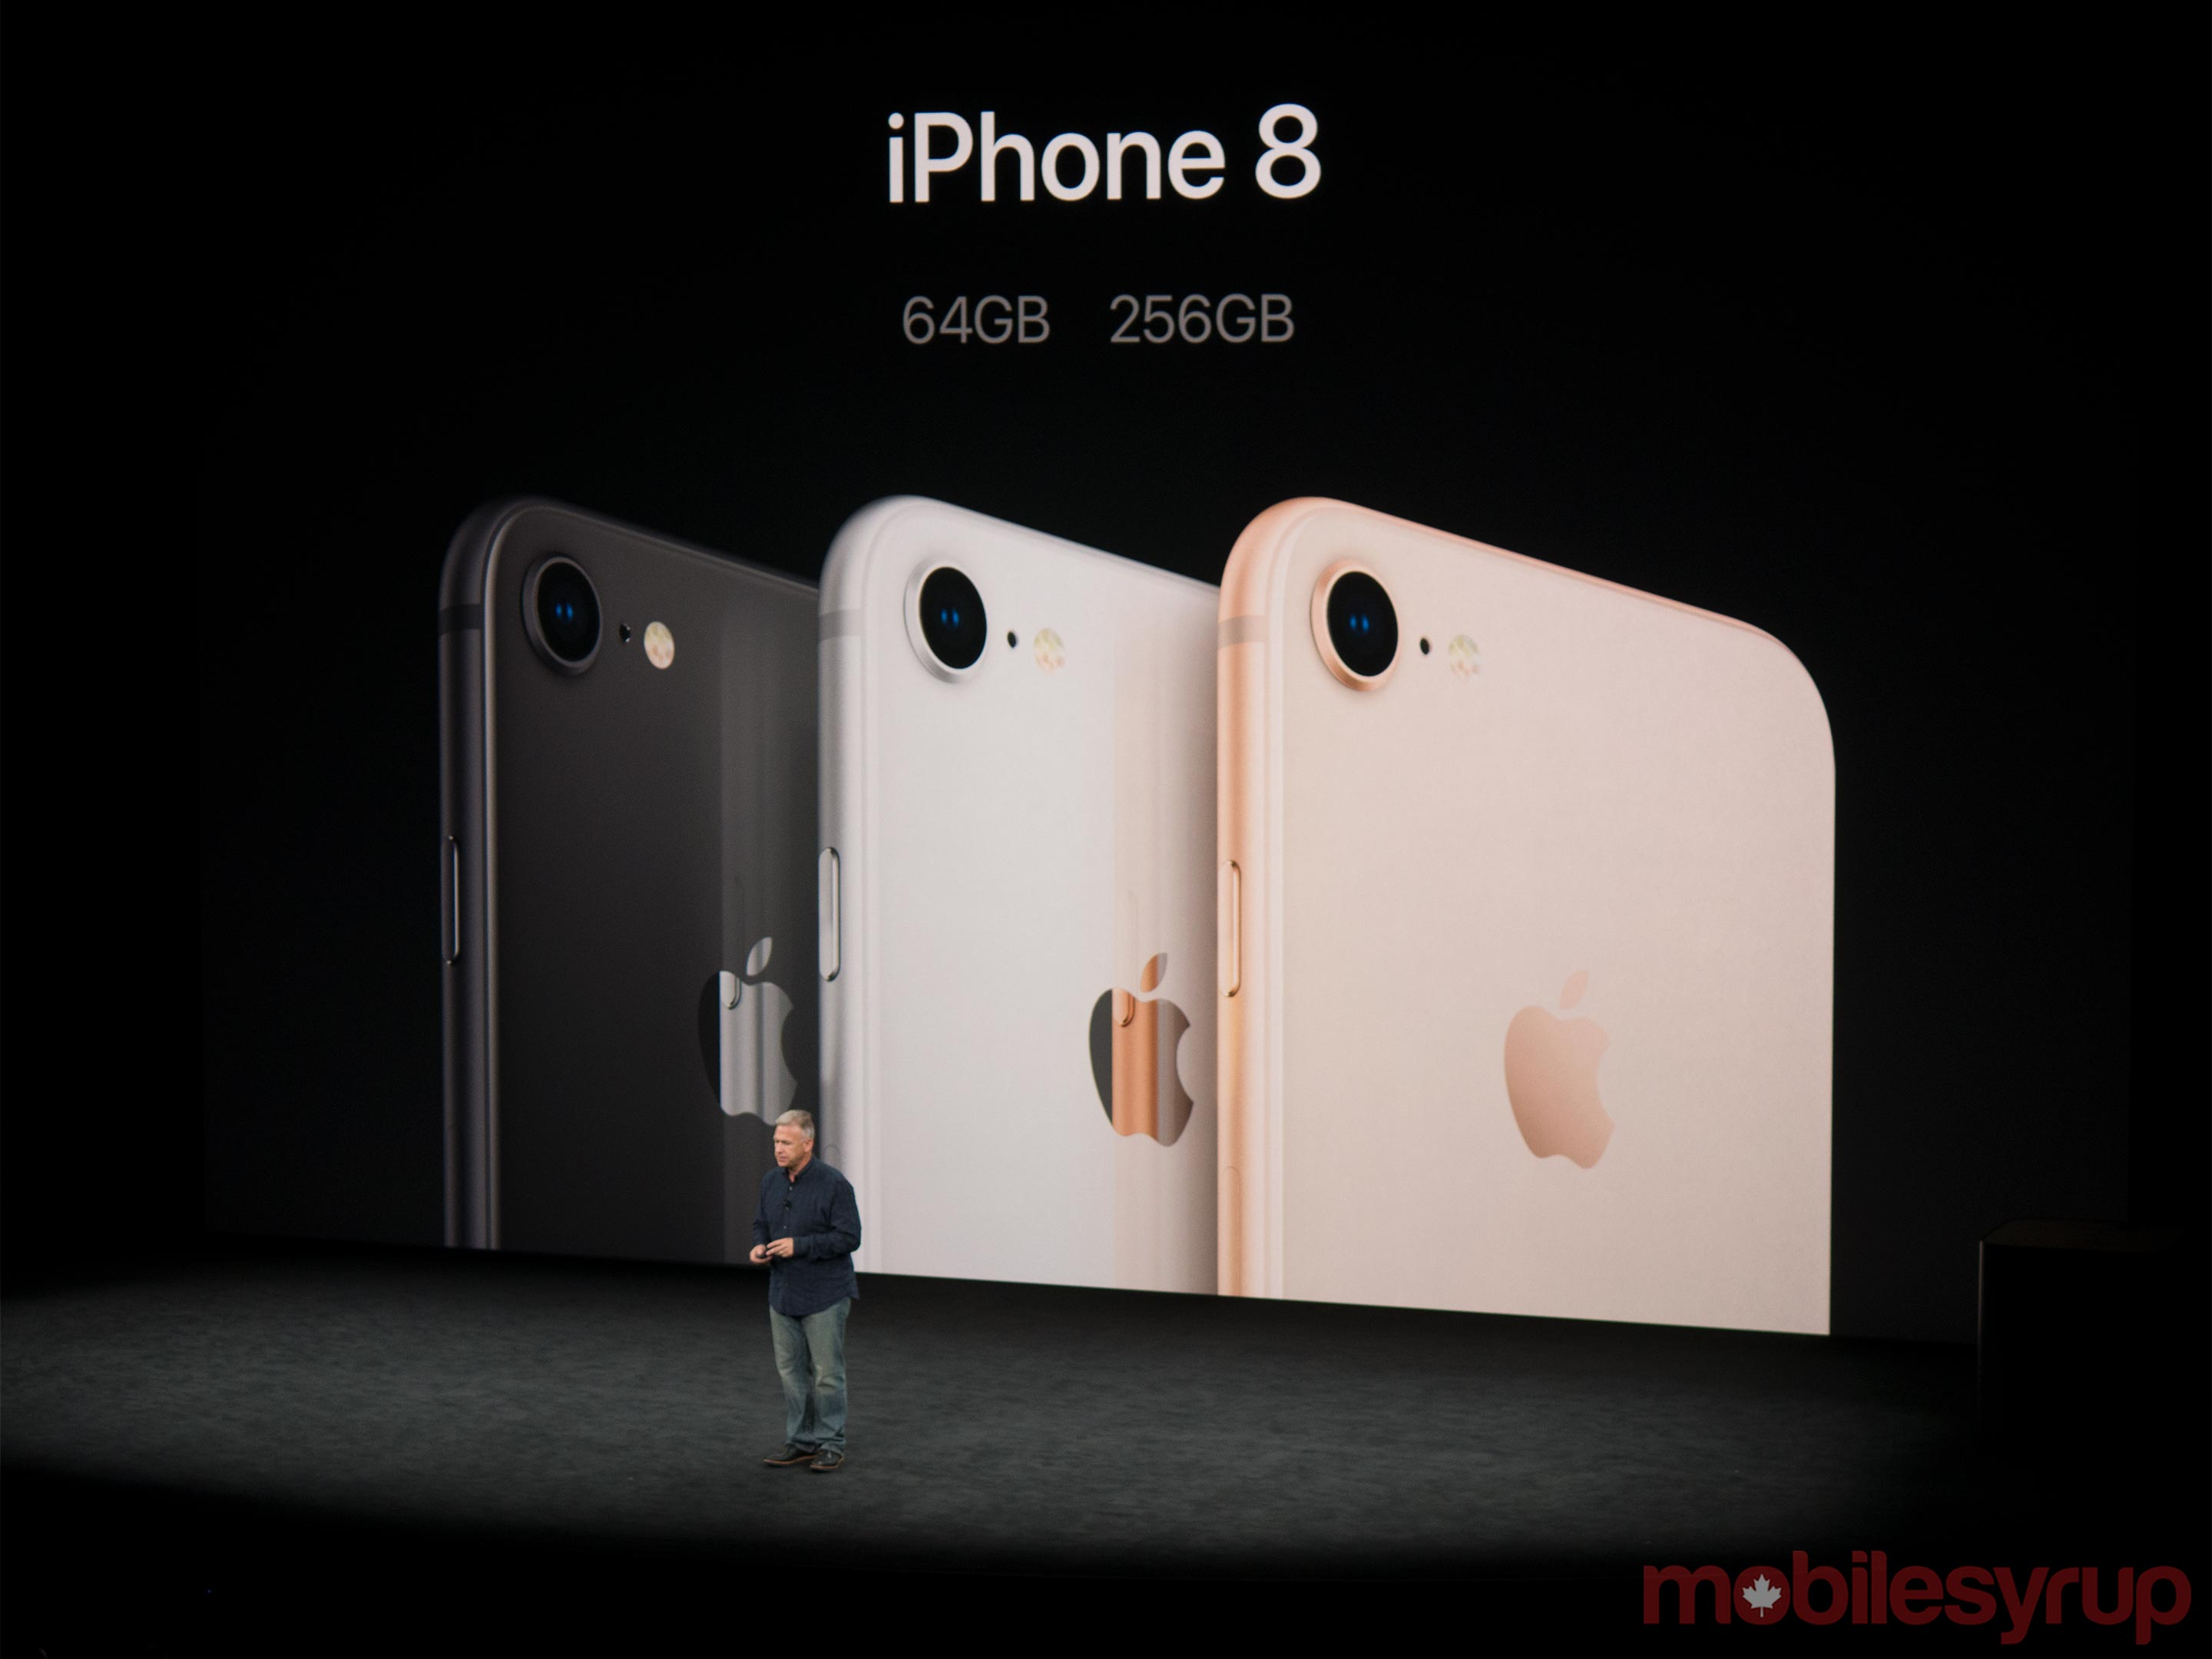 Apple's Phil Schiller presenting the iPhone 8